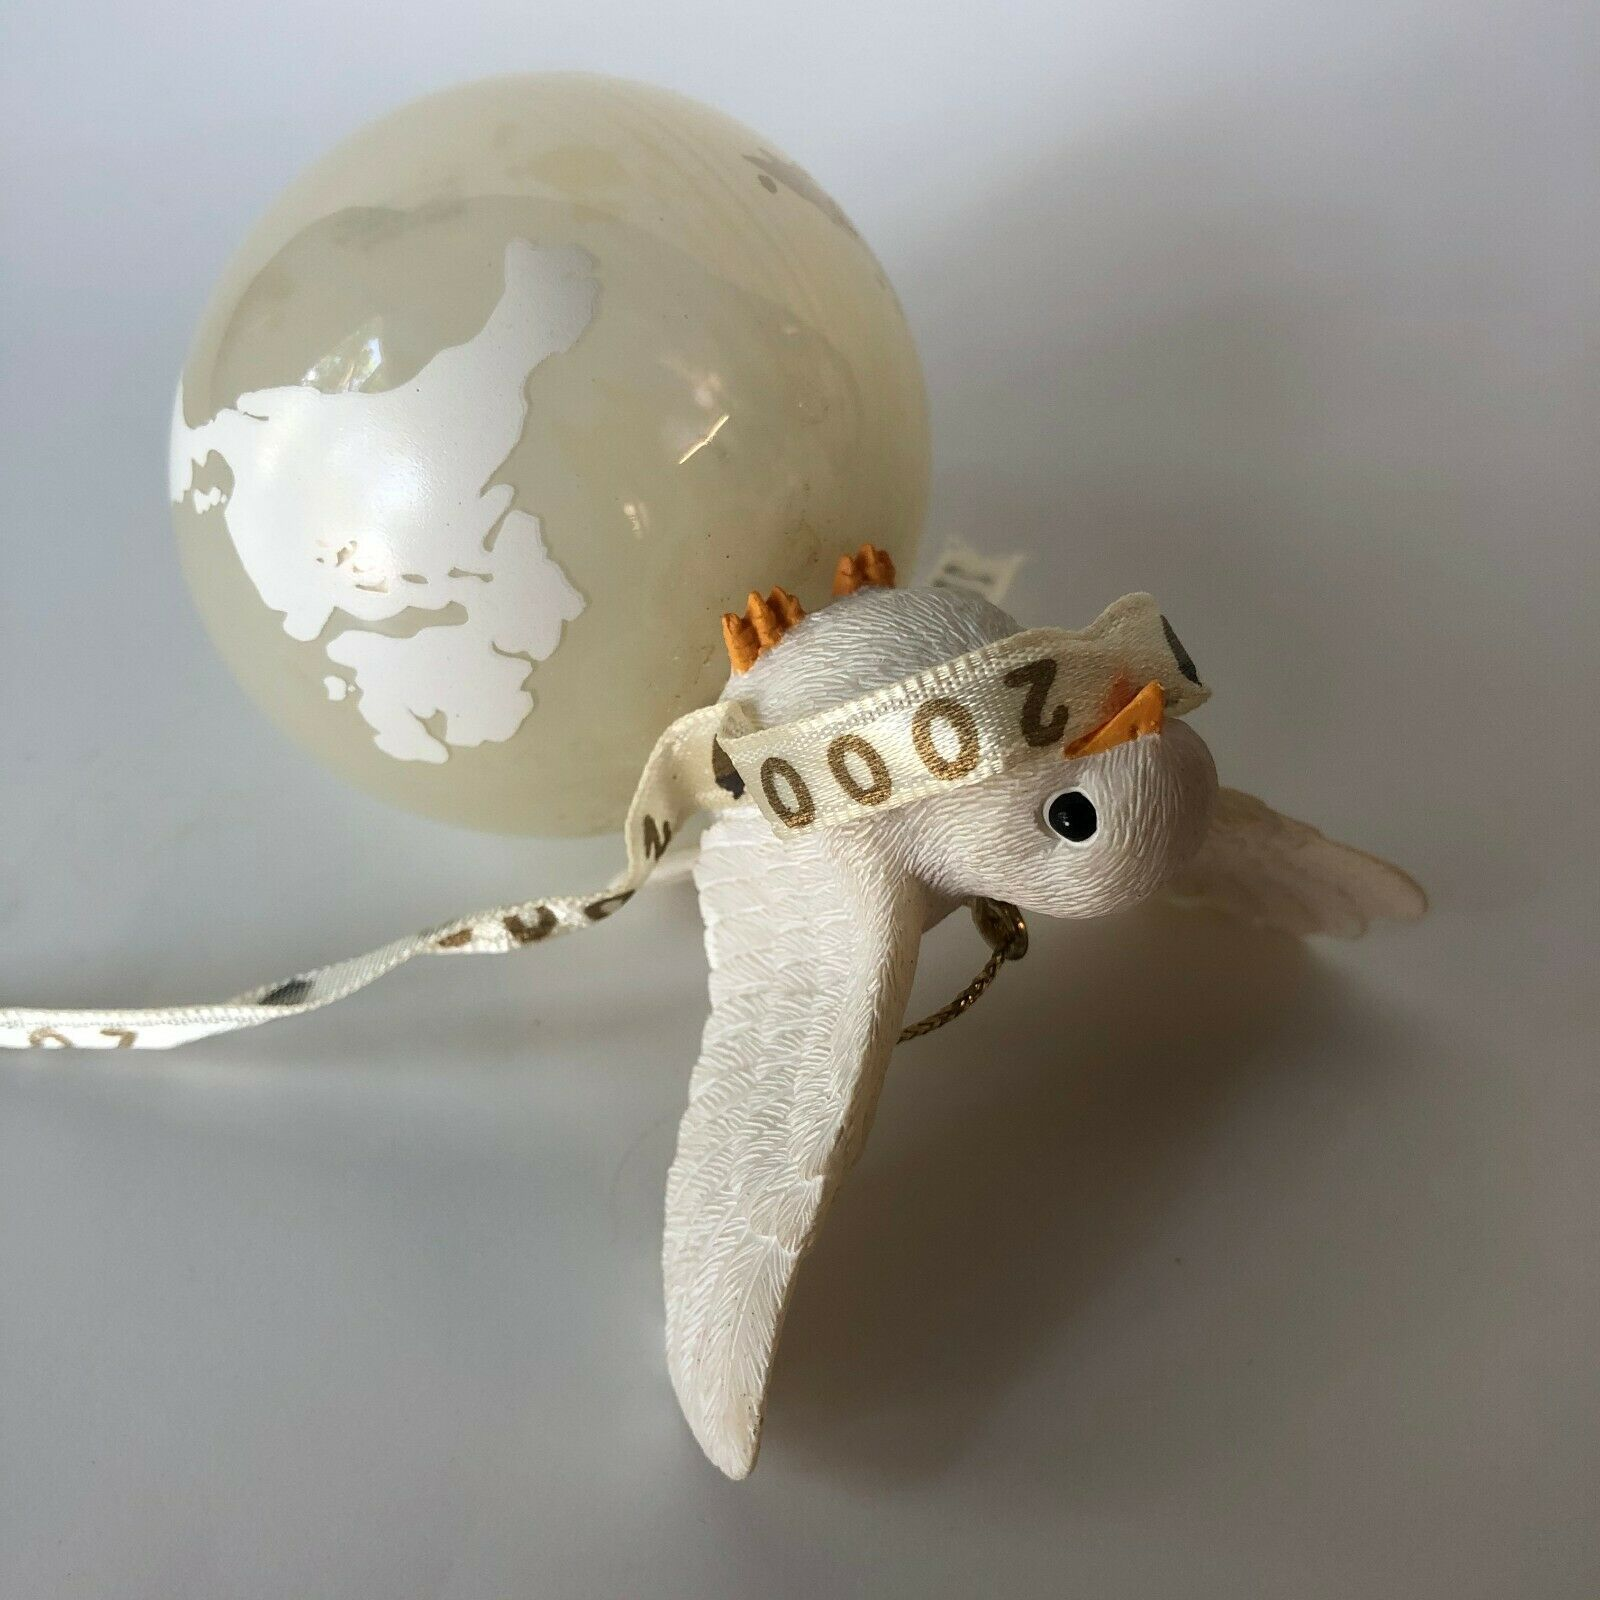 Dove Peace on Earth 2000 Ornament Charming Tails 862000 Fitz Floyd Dean Griff - $13.00